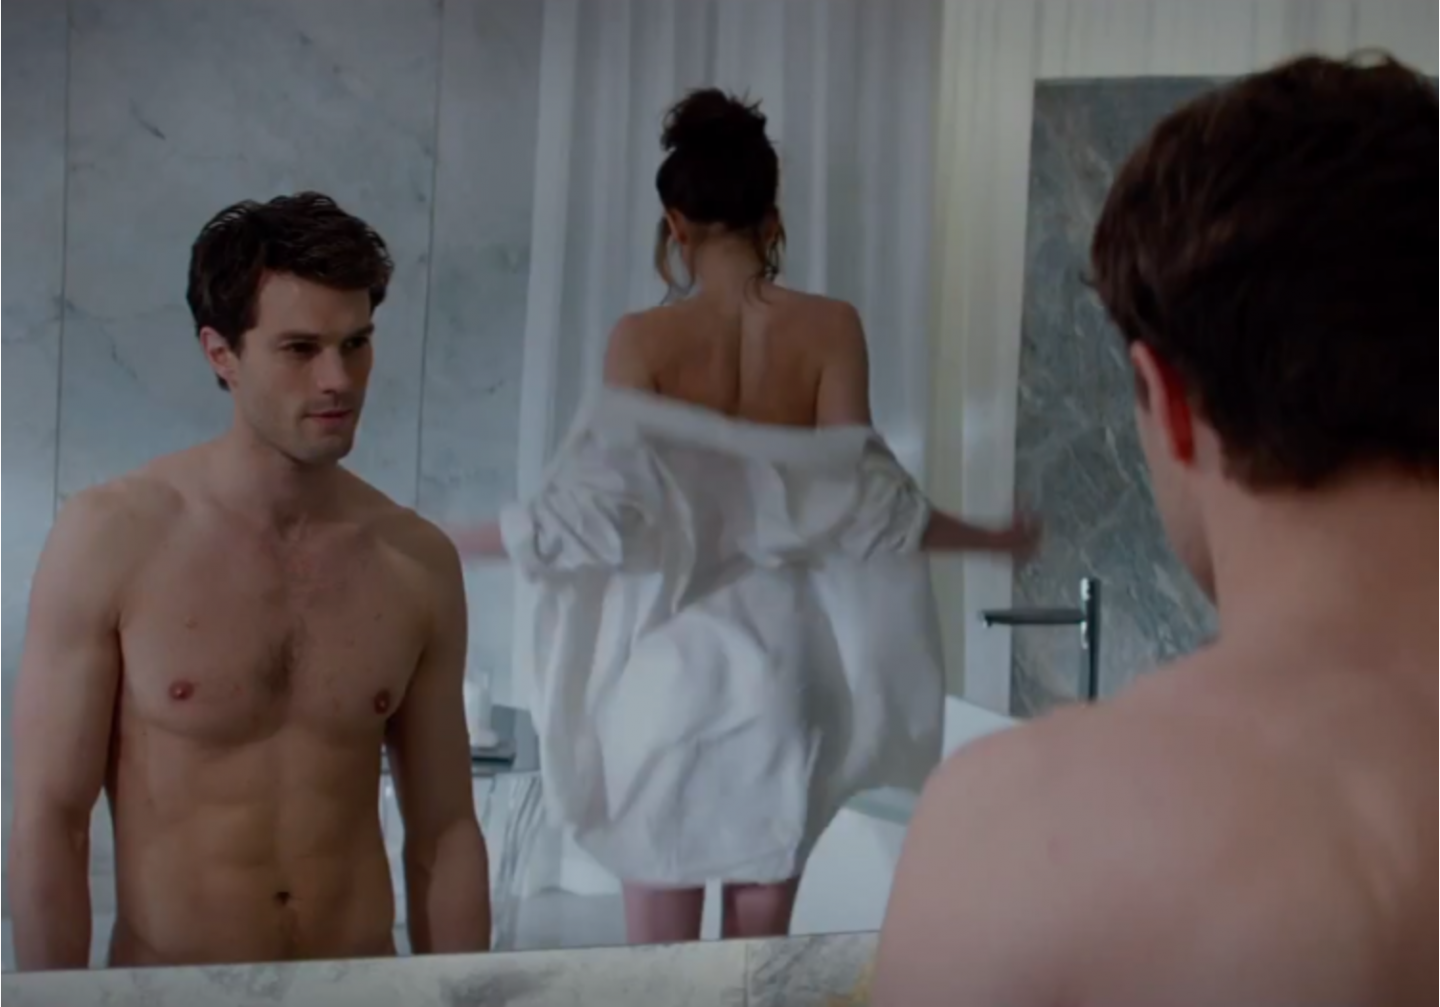 Fifty Shades of Grey's graphic eroticism has garnered it a worldwide audience of millions.